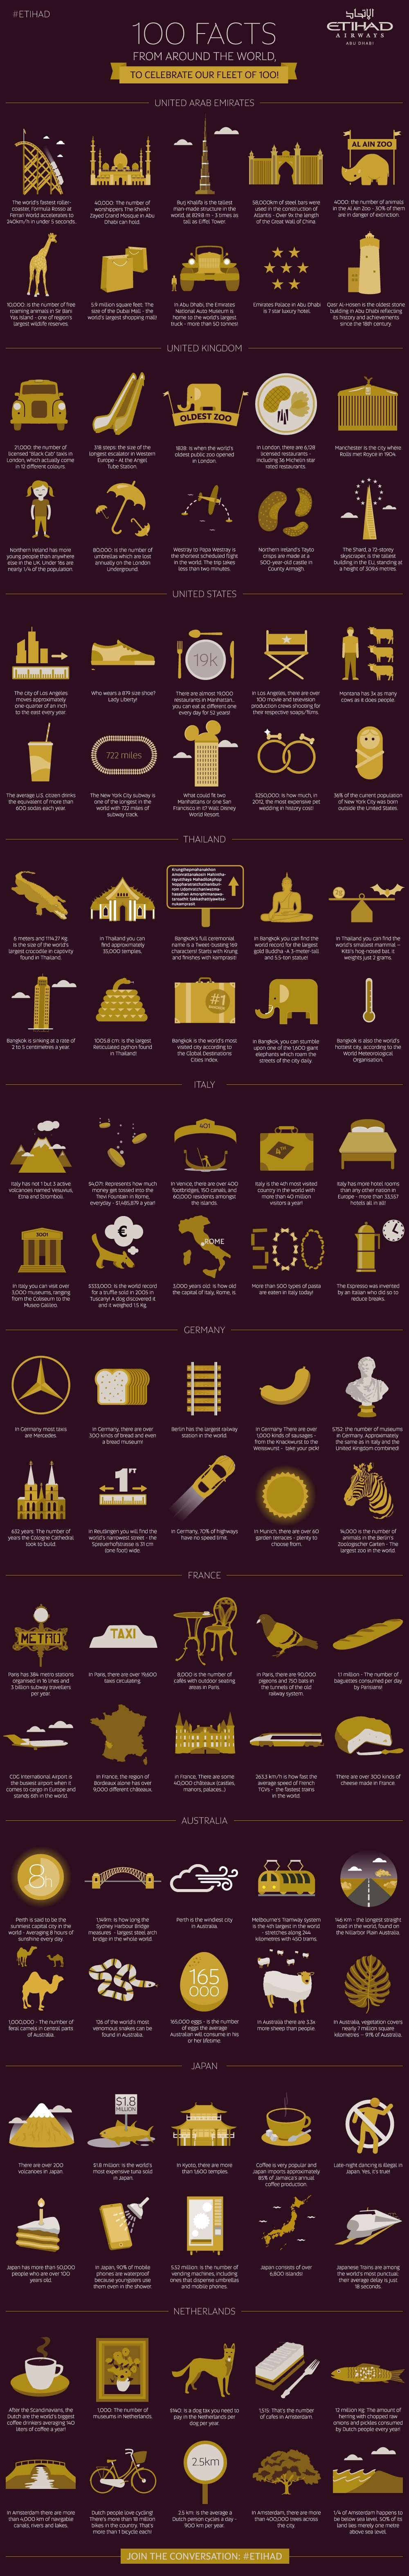 100 Facts Around World Infographic